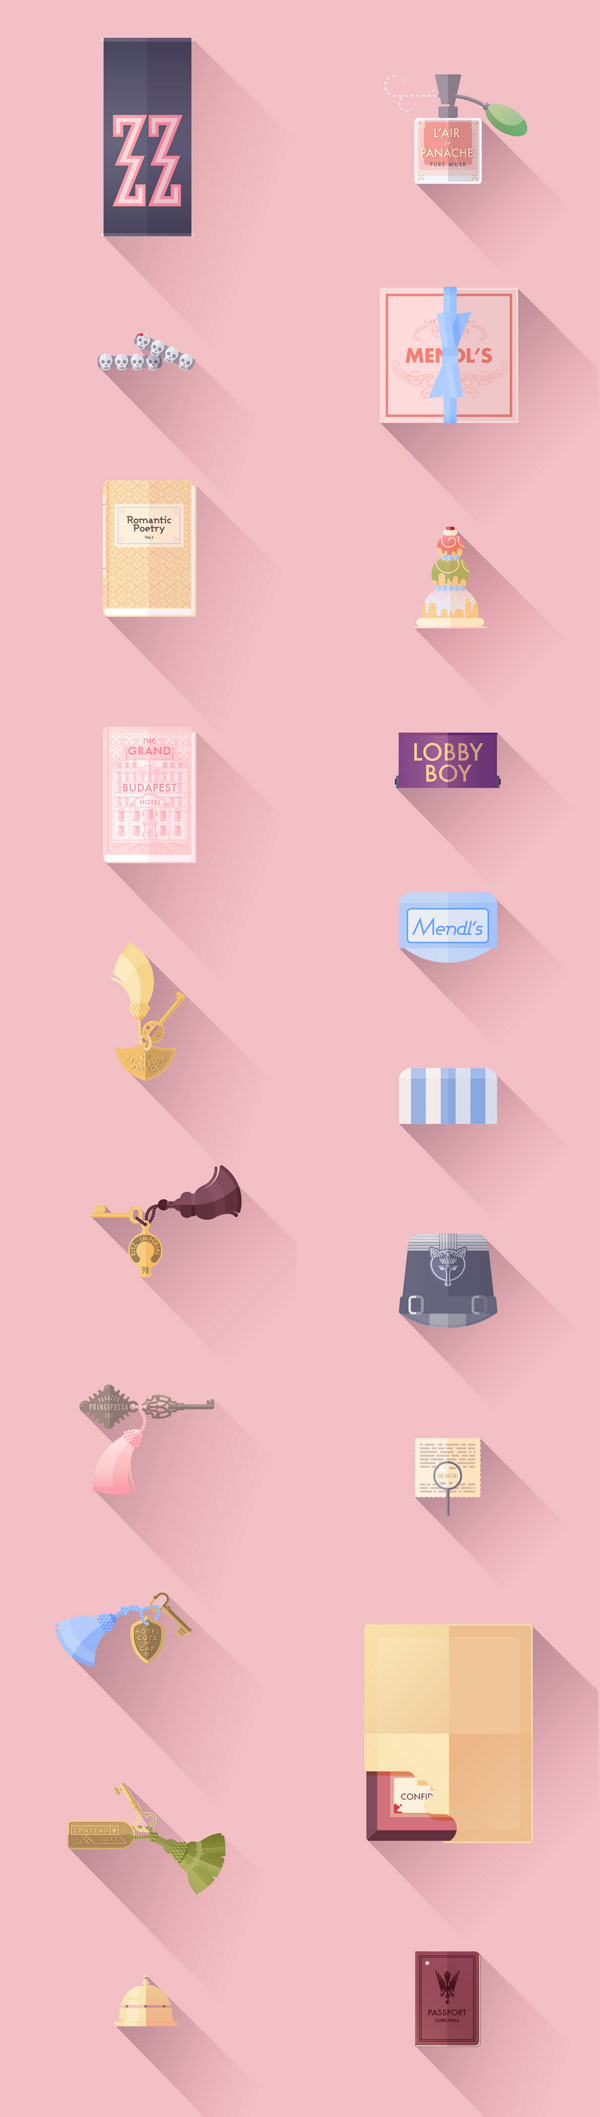 The Grand Budapest Hotel - Flat Illustrations by Lorena G